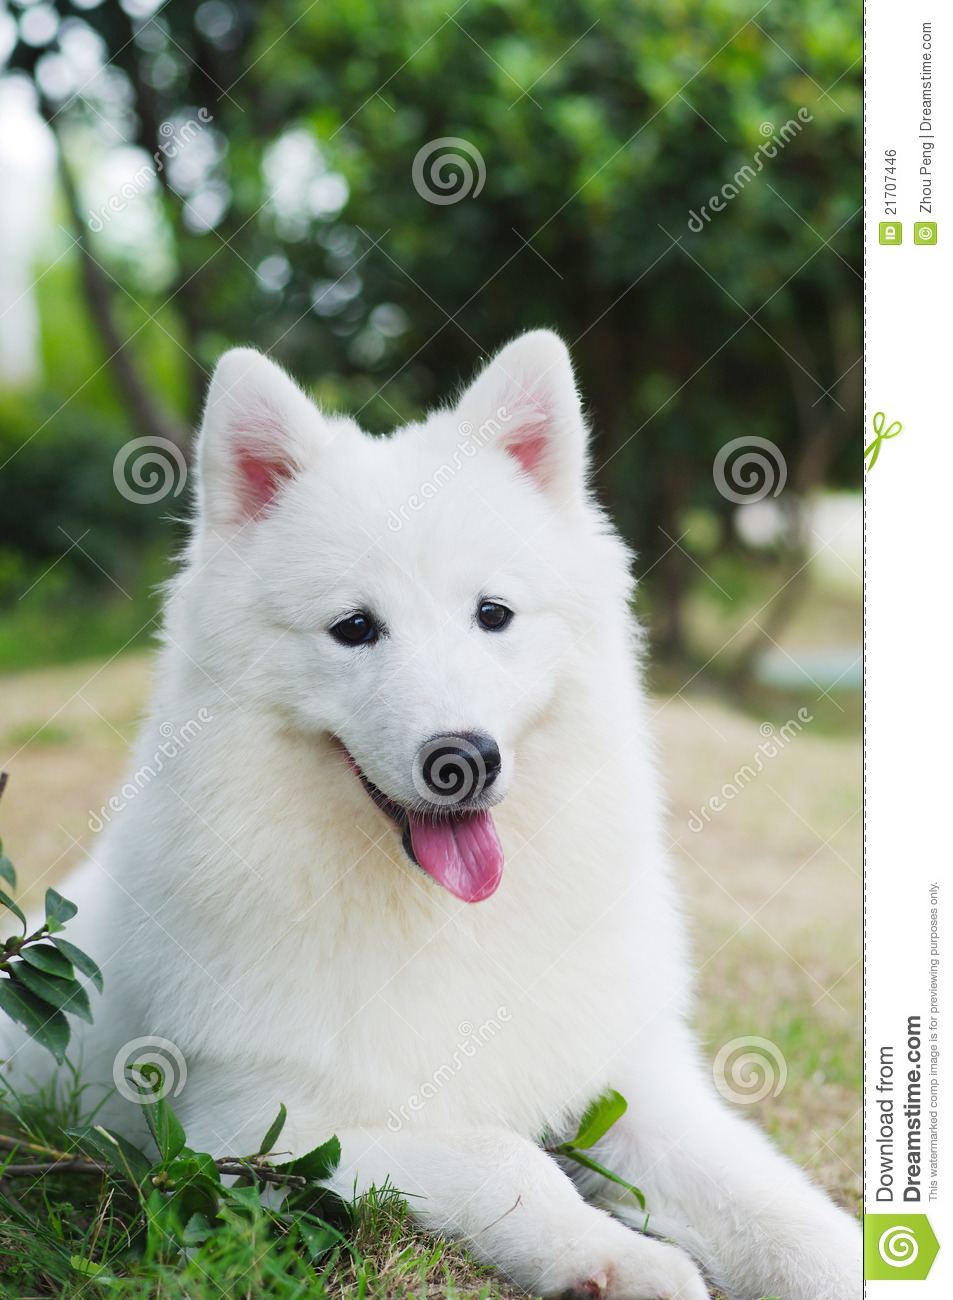 White Dog Royalty Free Stock Image - Image: 21707446 Smiling Dog And Cat